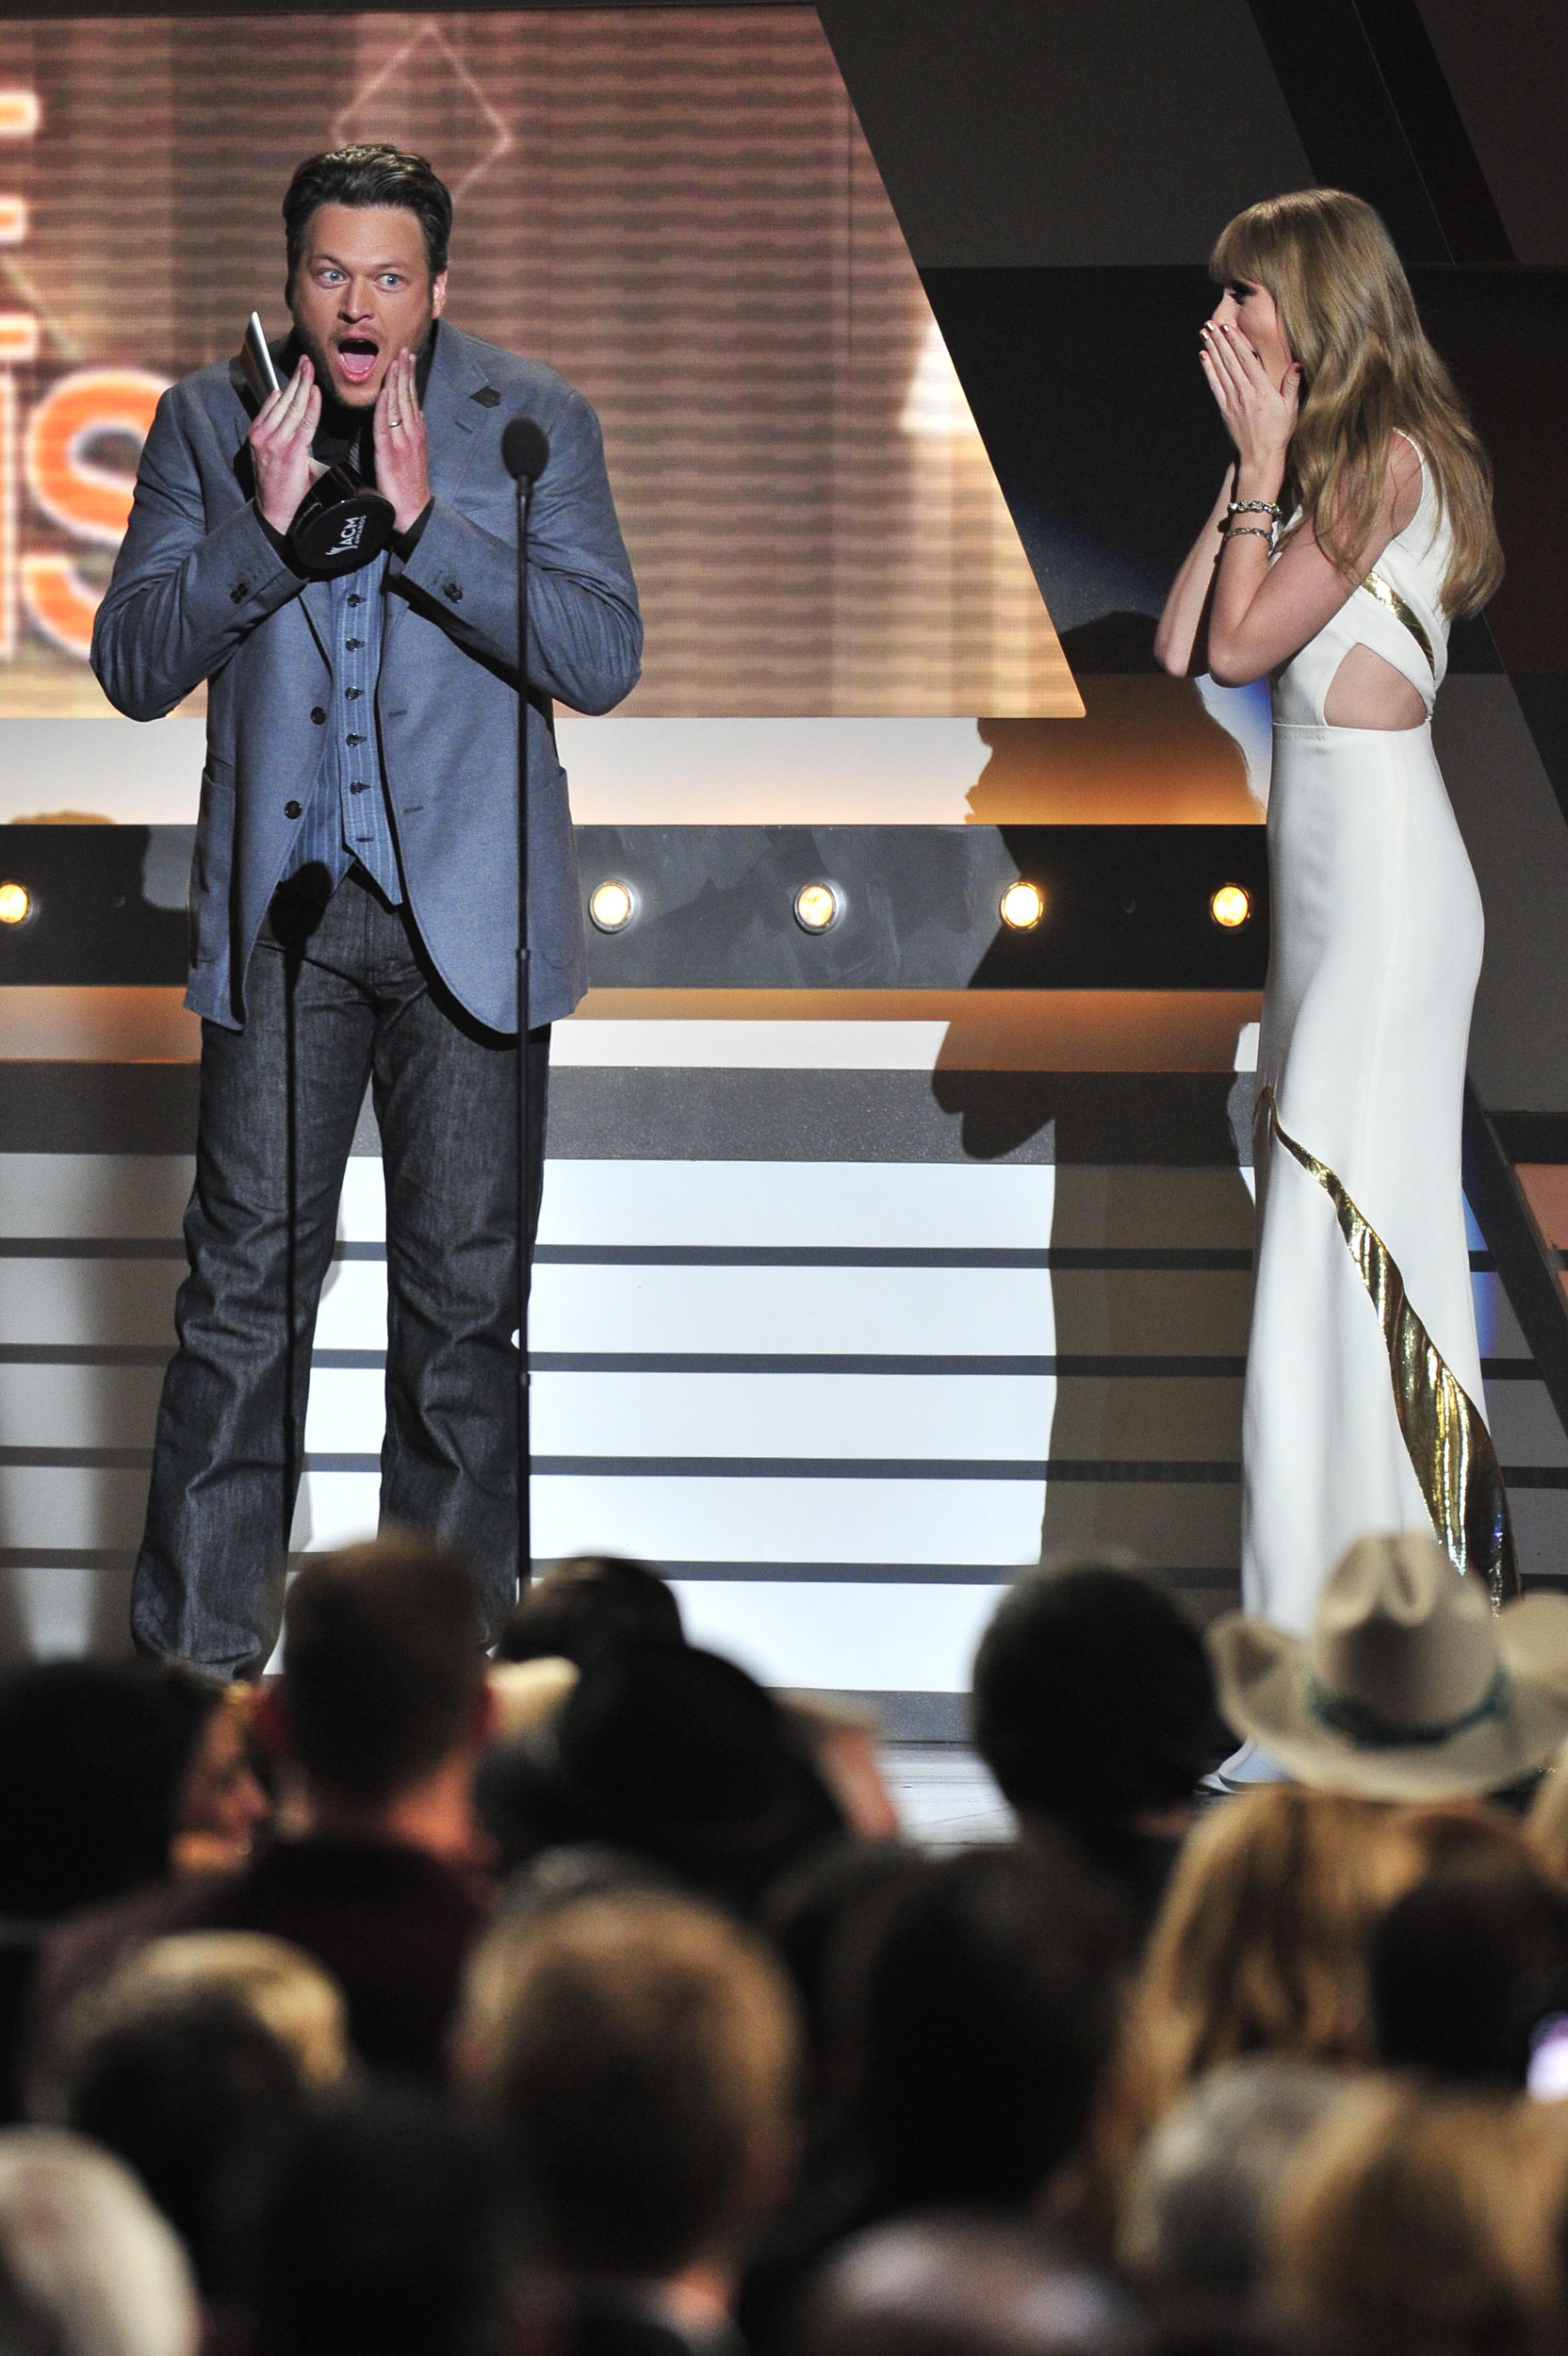 Blake Shelton jokes with Taylor Swift, imitating her noted look of surprise at awards shows, after winning Male Vocalist at the ACM Awards at the MGM Grand April 1, 2012 in Las Vegas, Nev.